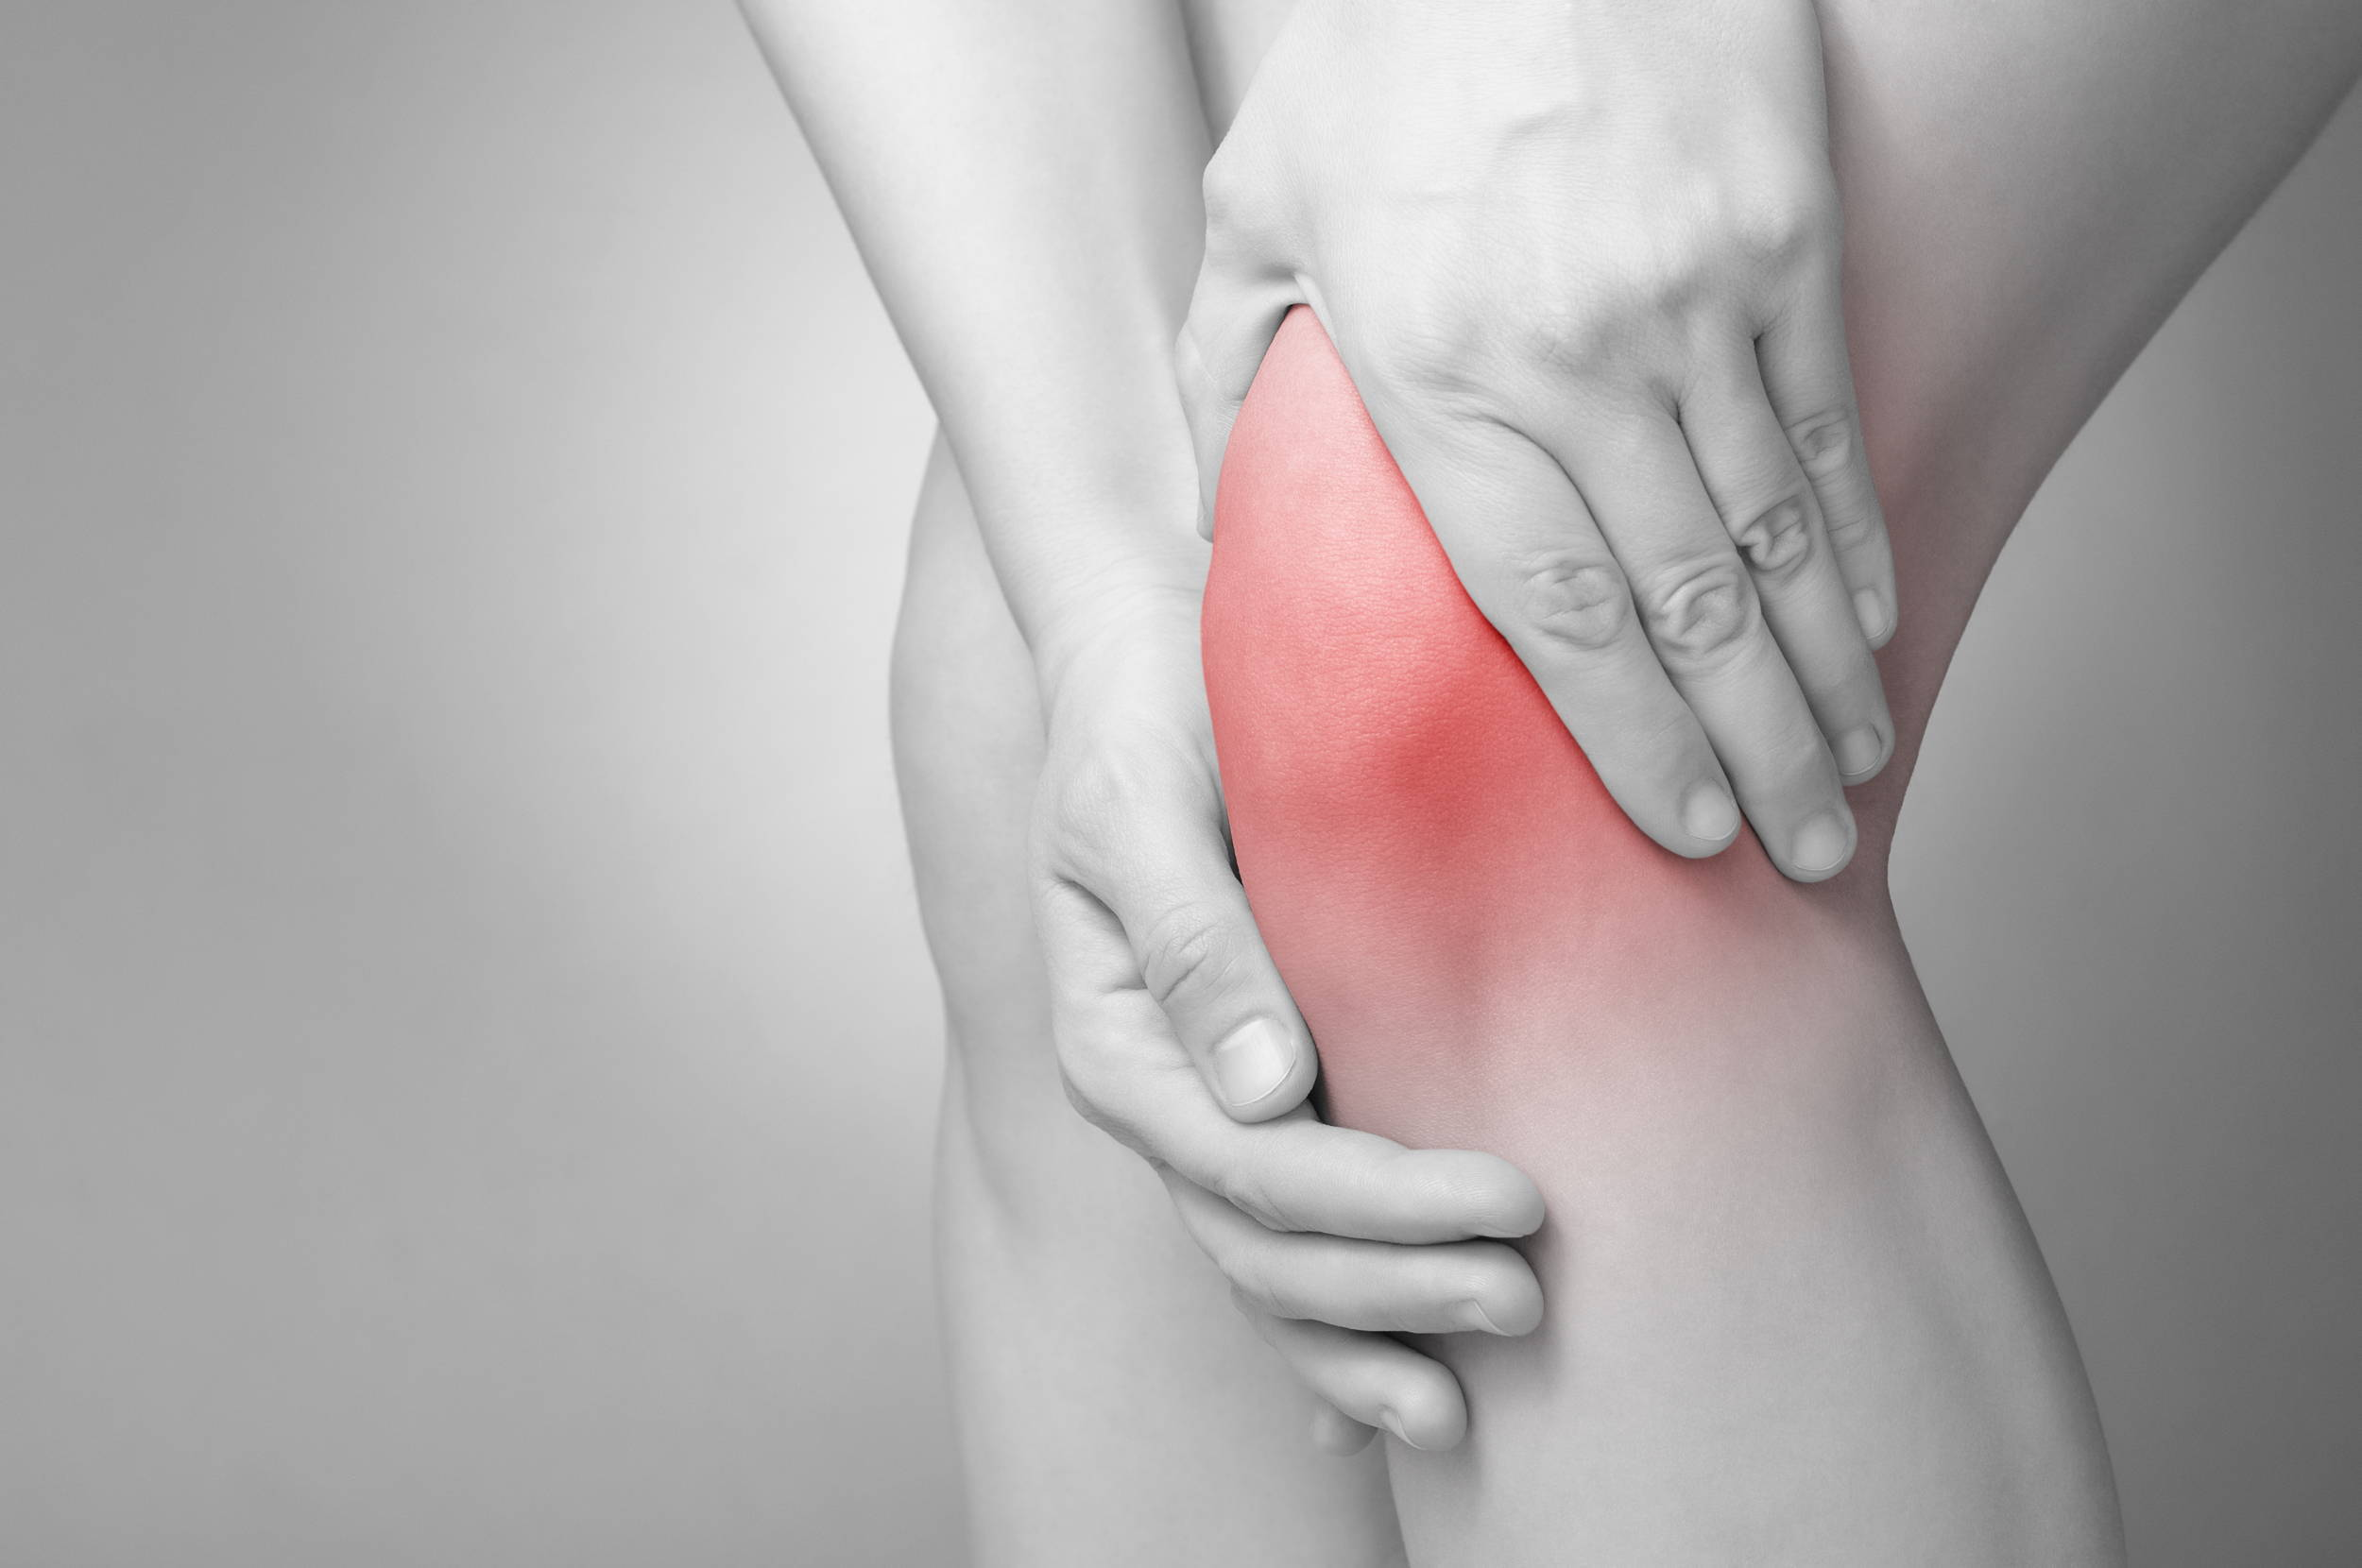 Causes of patellar tendonitis